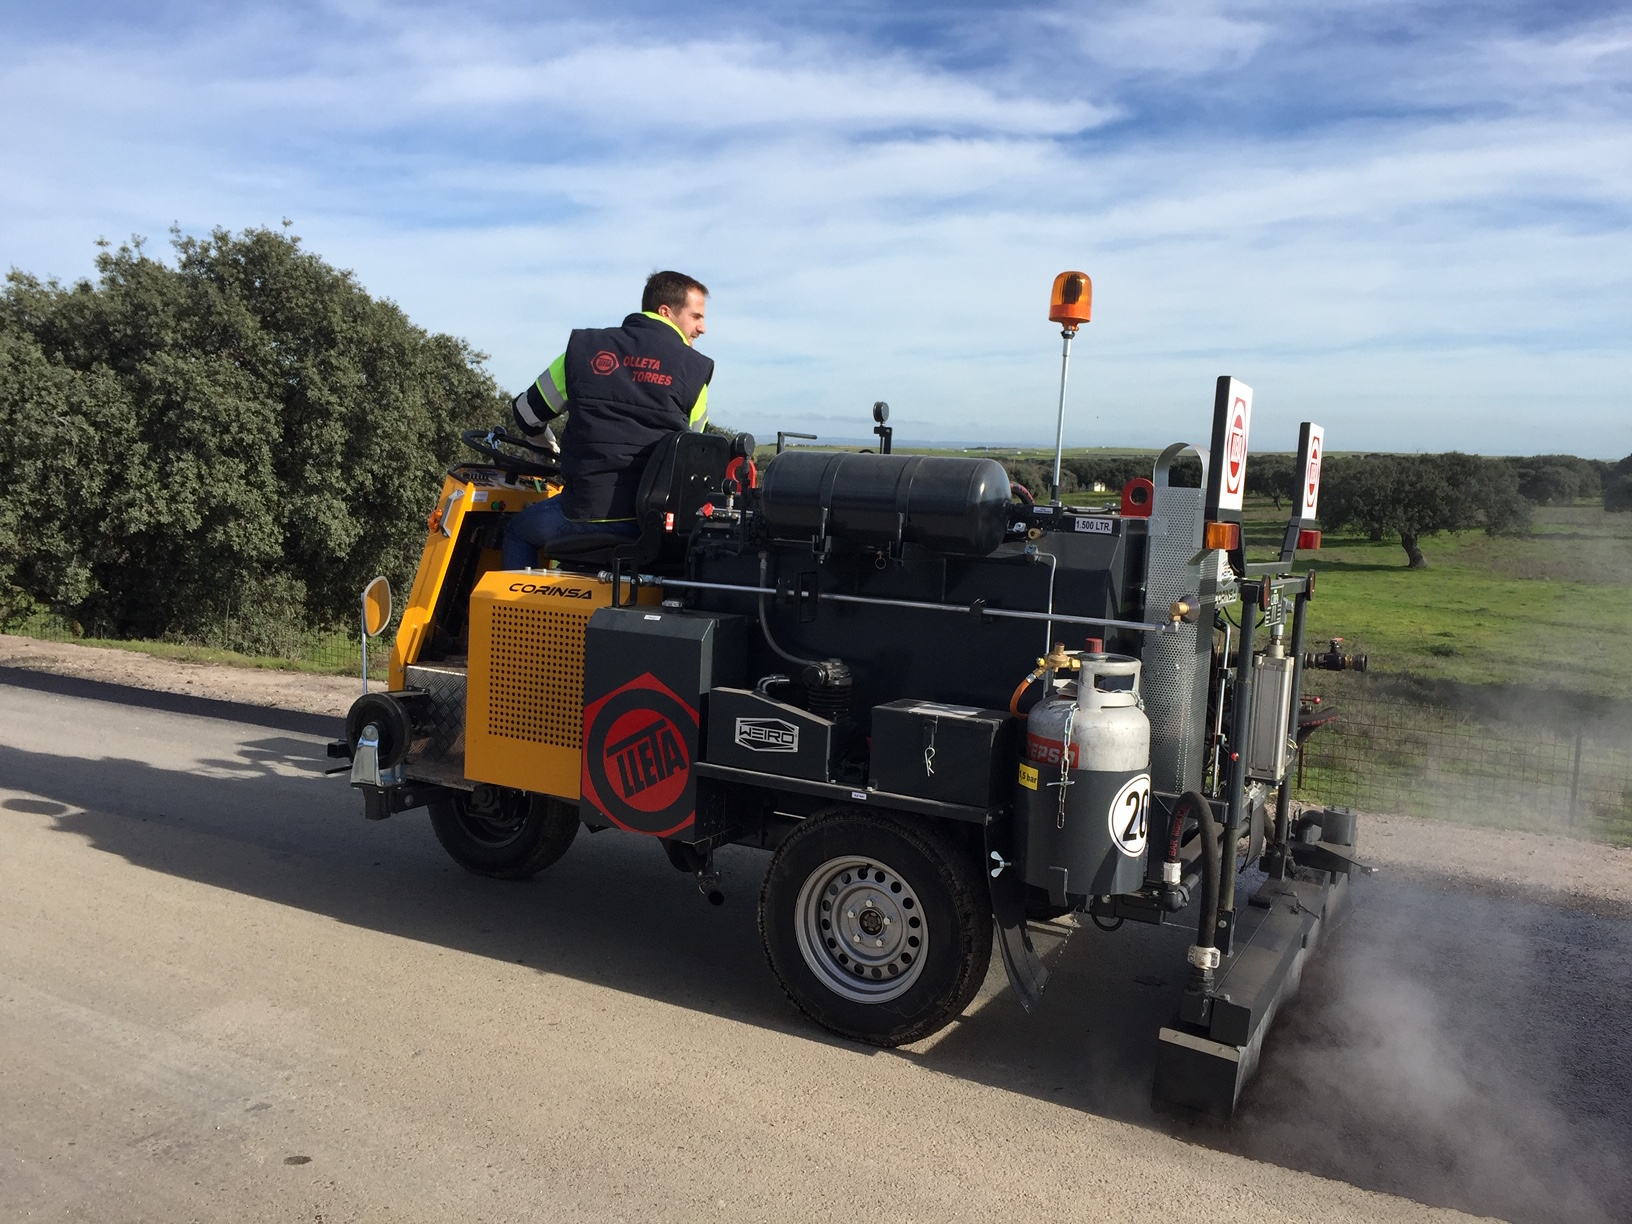 First unit delivered of the self-propelled sprayer WEIRO